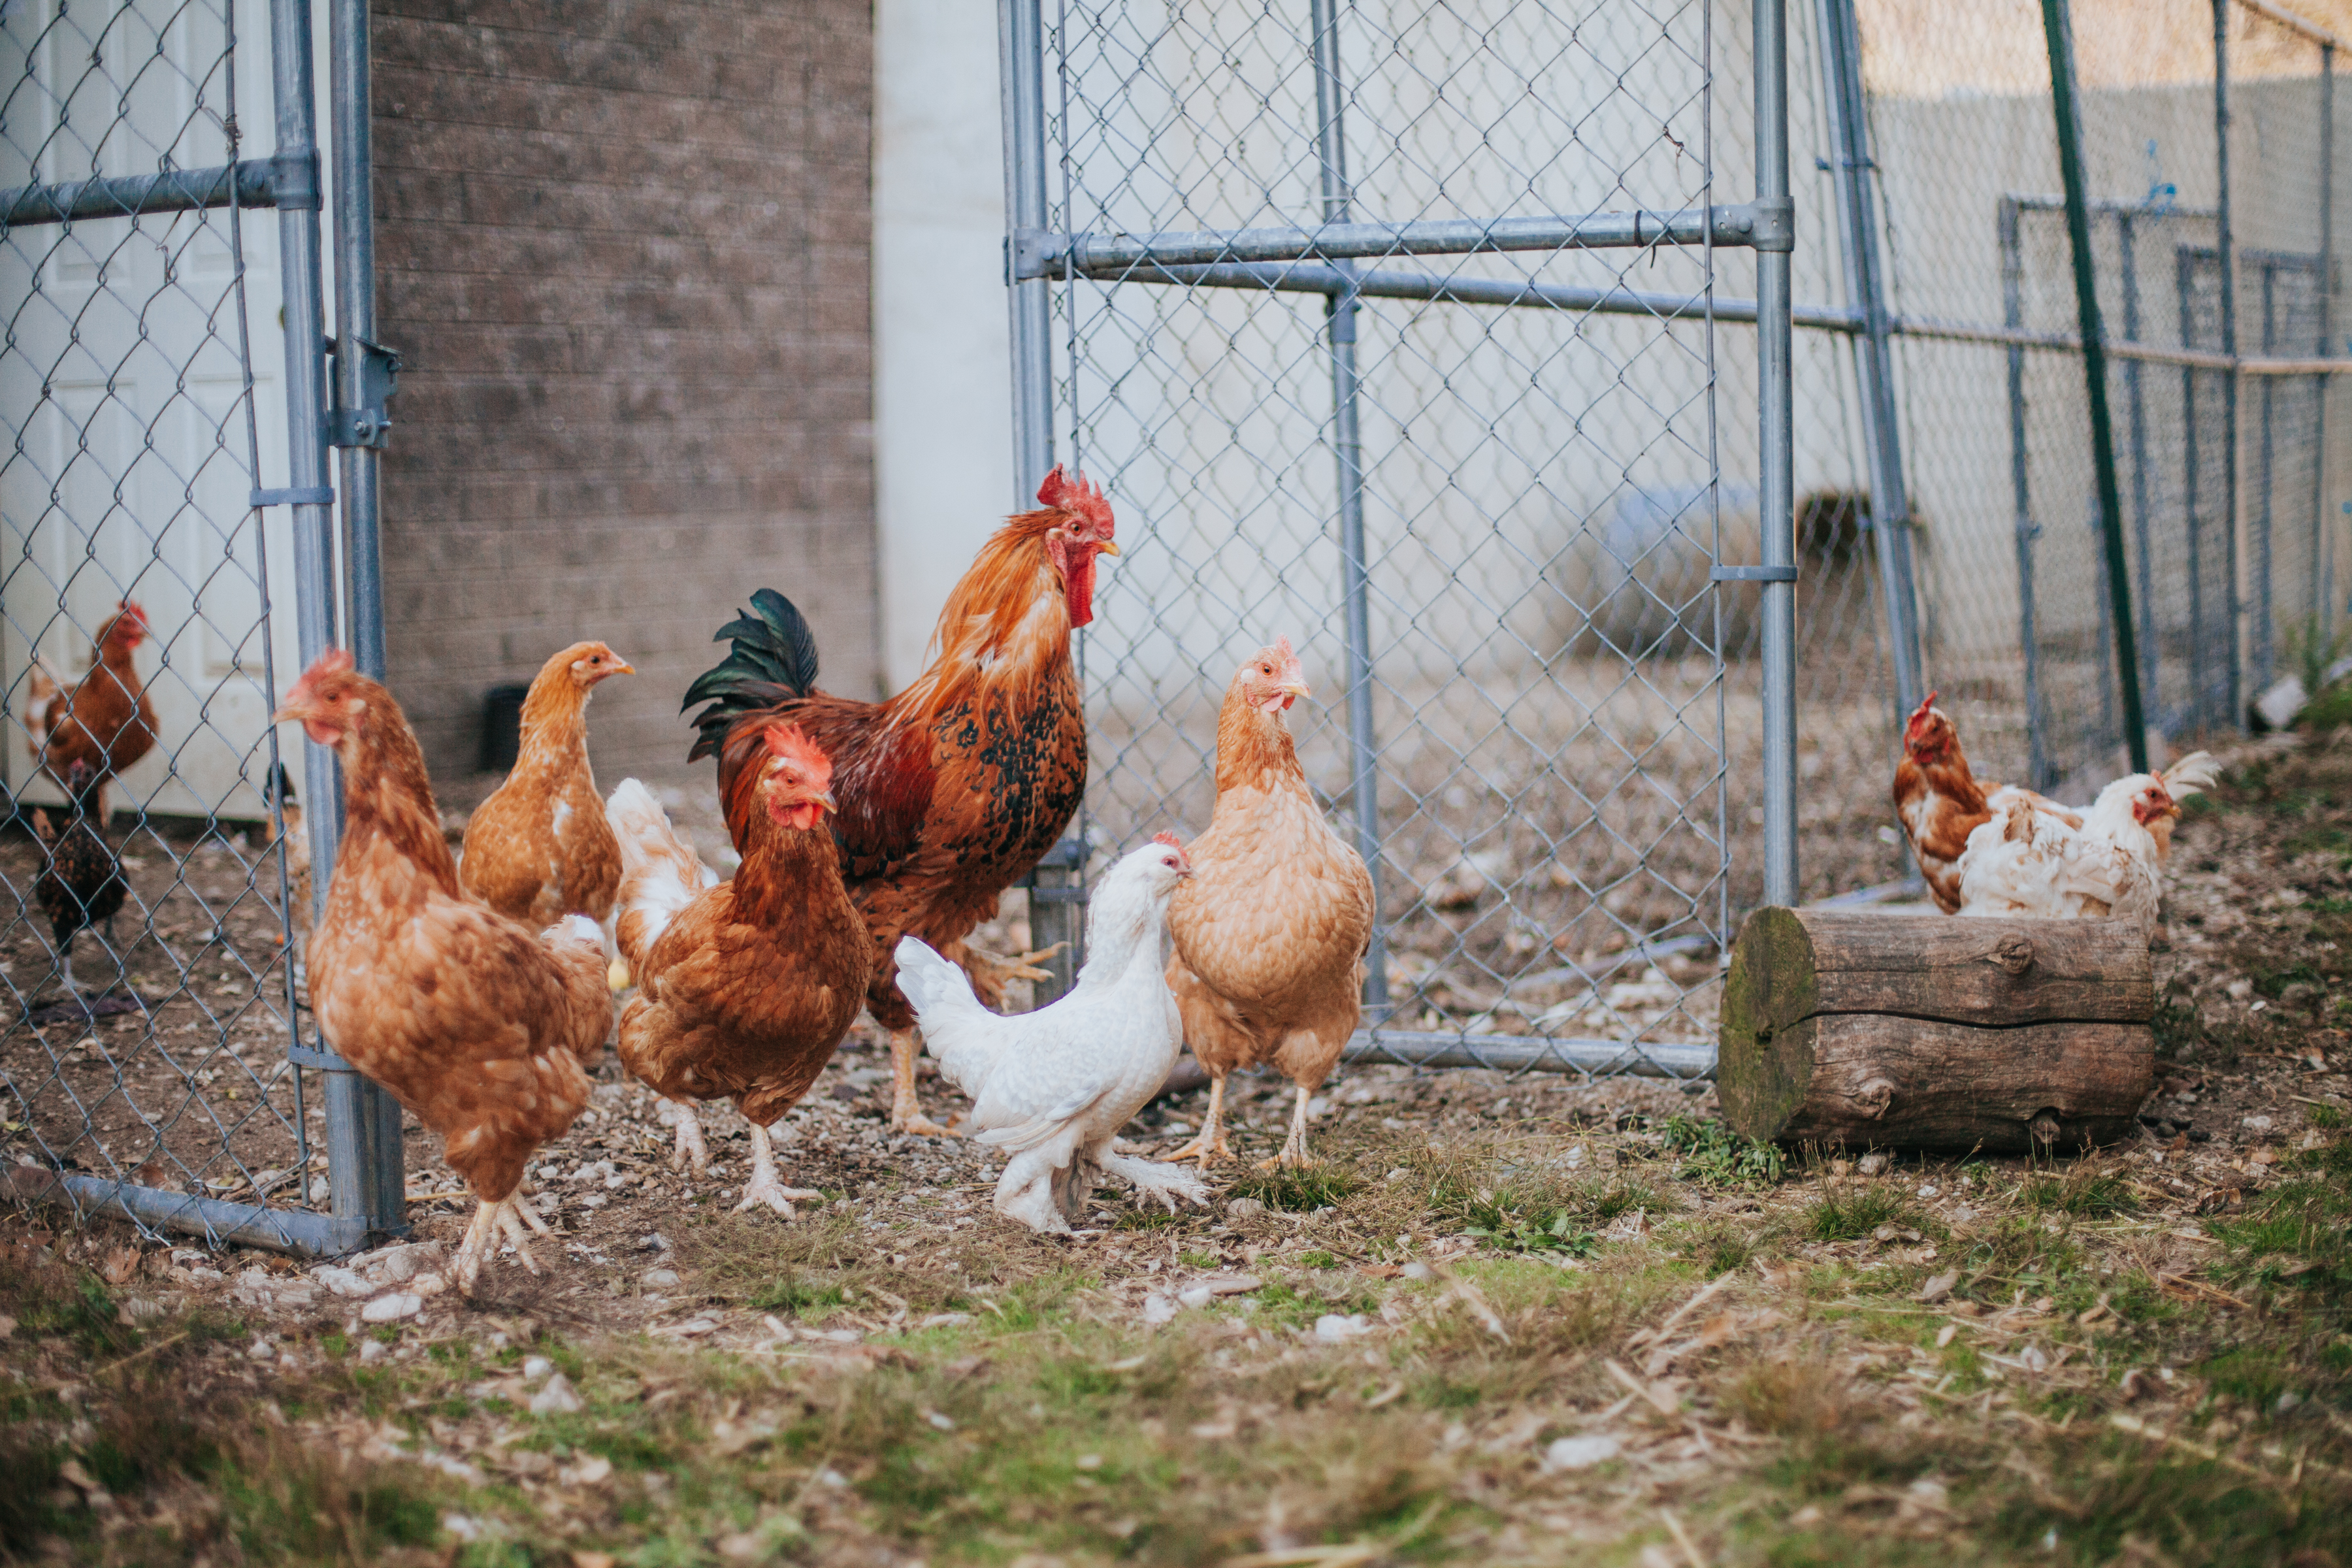 Our Free to Roam Chickens